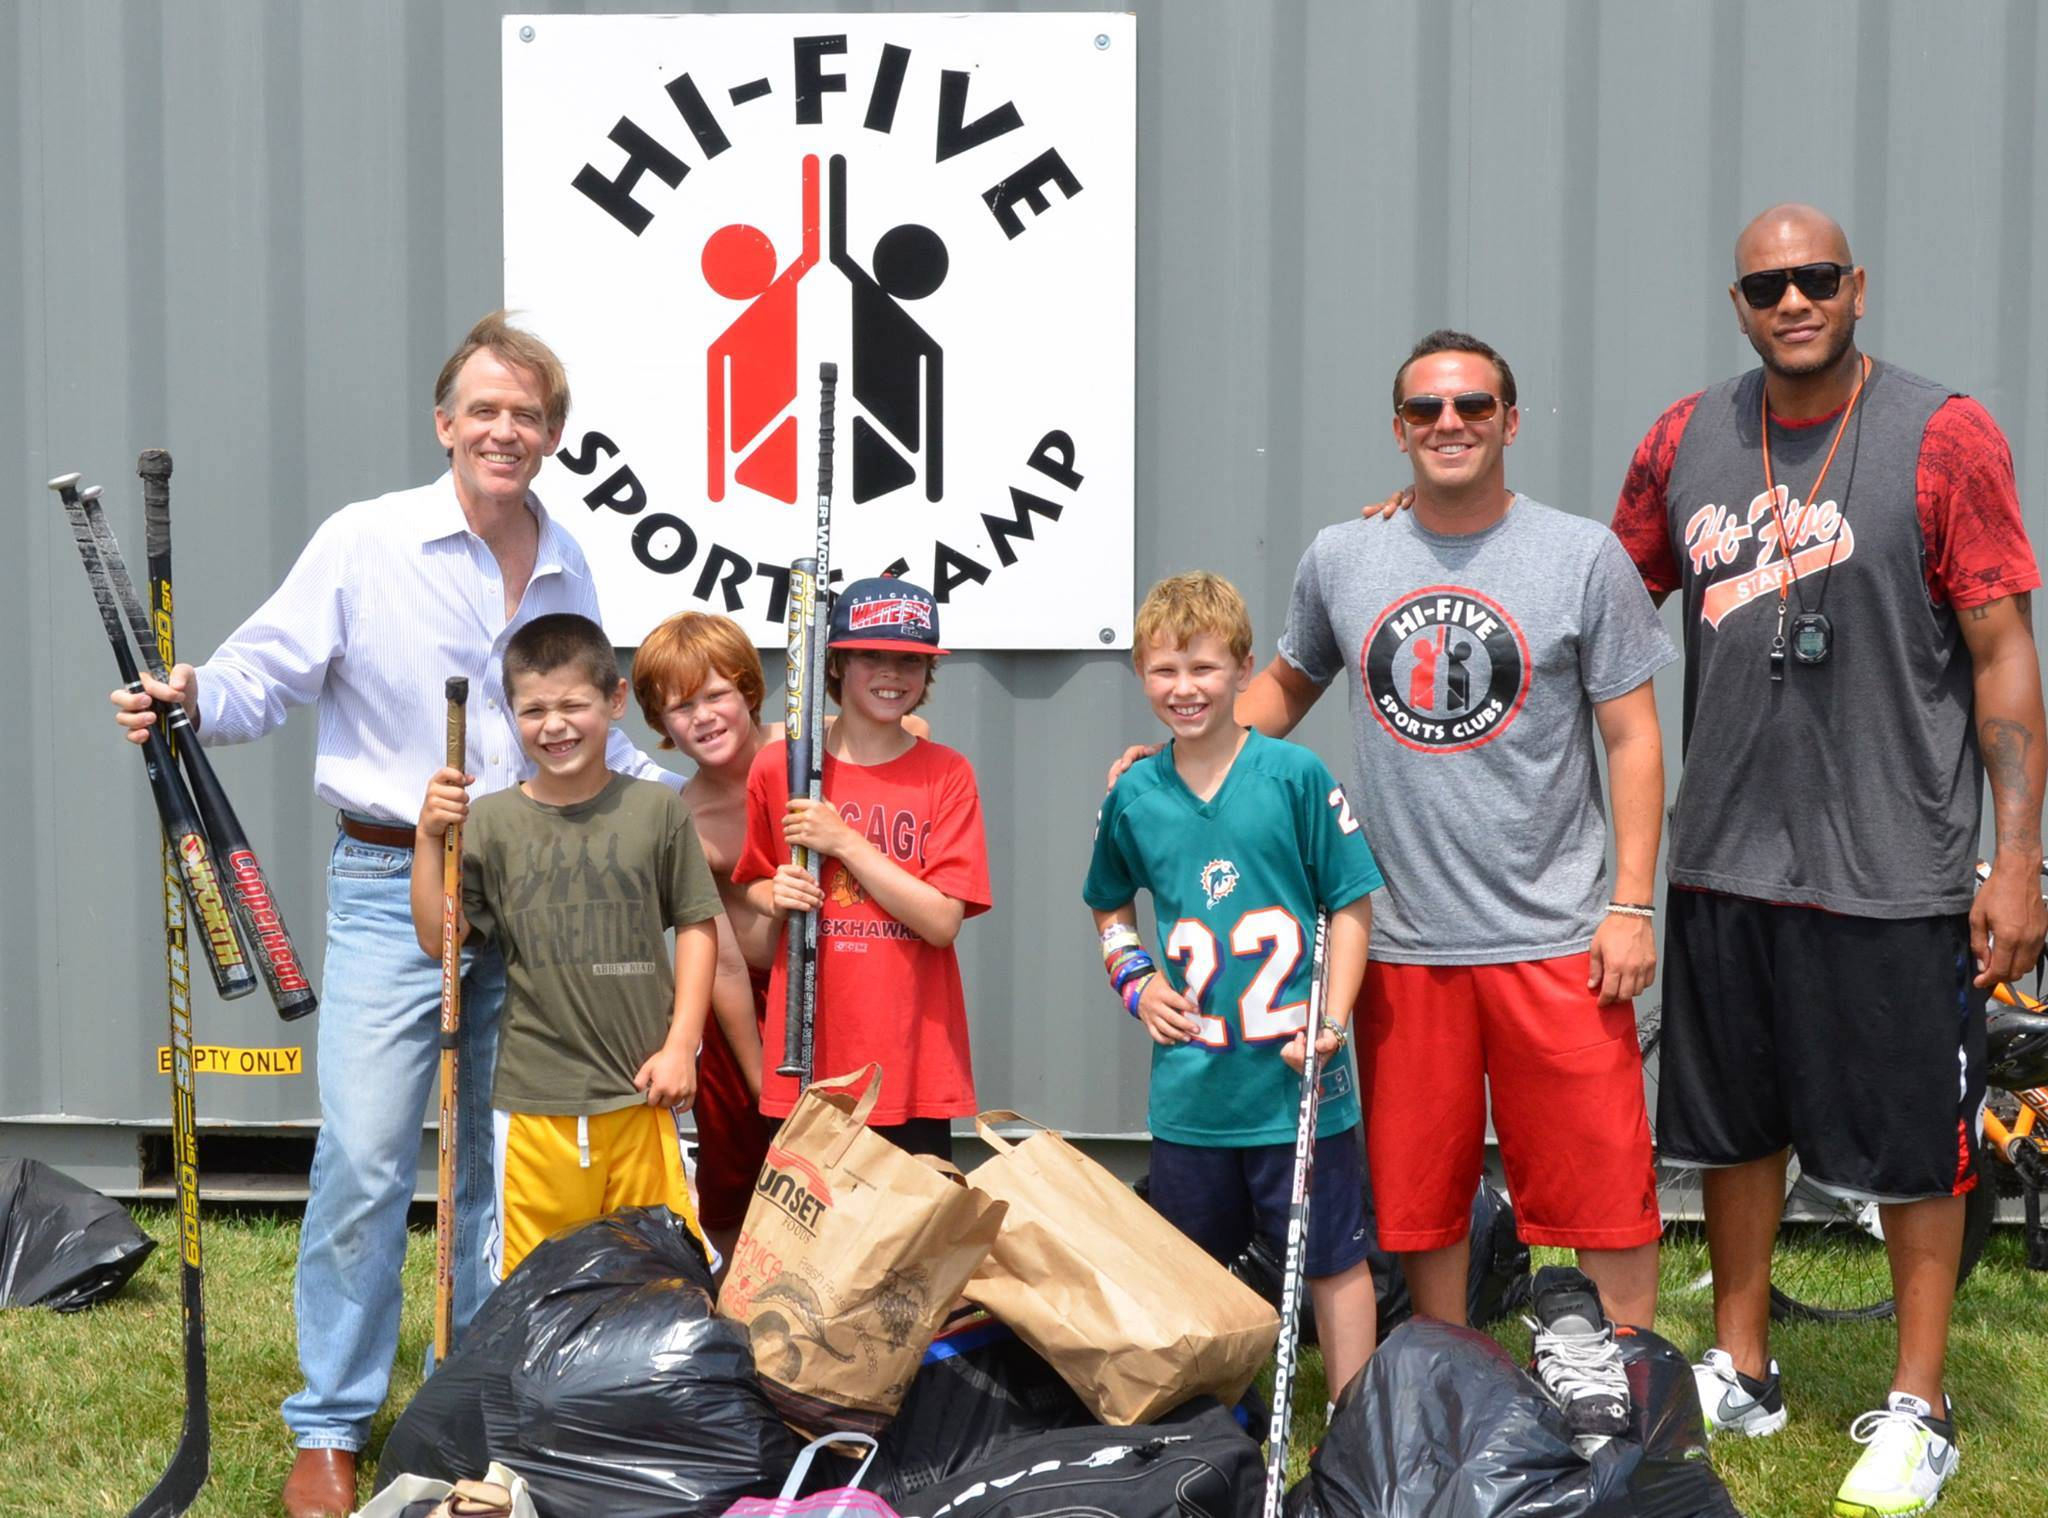 Gear for Goals' Executive Director Dr. Warren Bruhl poses with Danny Tuchman and Donnell Thomas with campers from Hi-Five Sports Camp who donated gear to benefit needy kids in the Dominican Republic and Kenya.